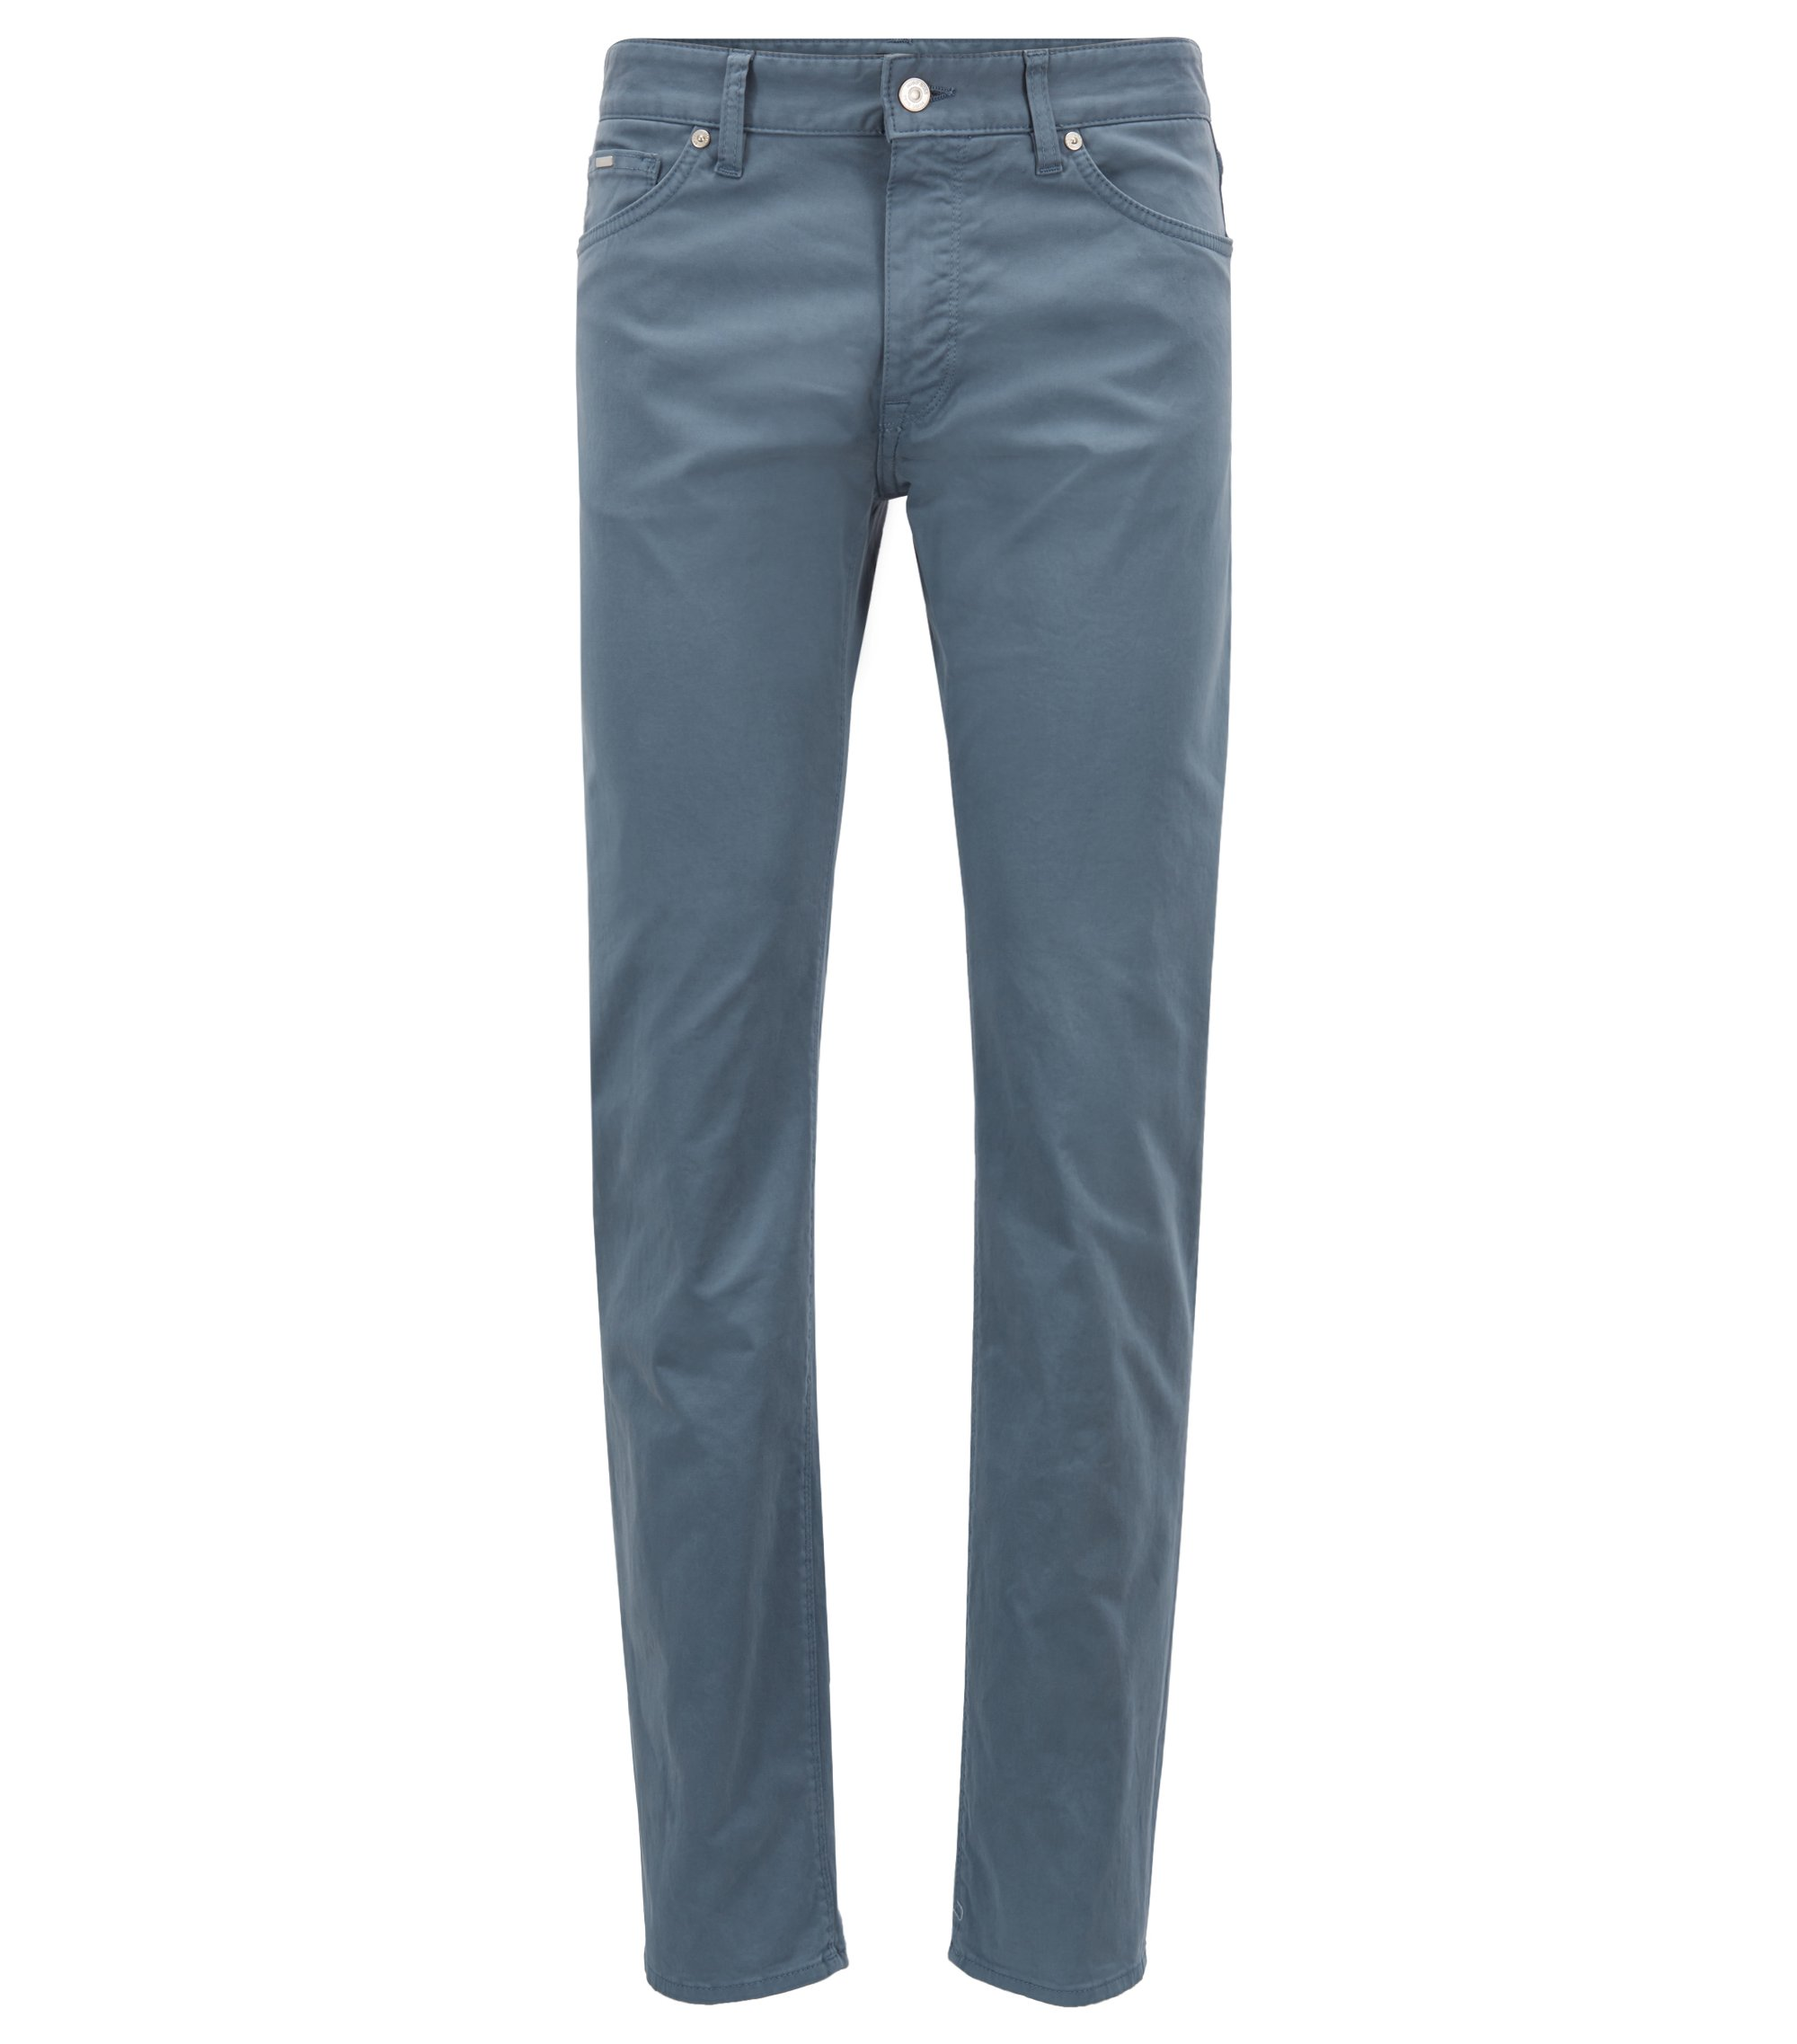 Jean Regular Fit en denim stretch effet satin brossé Diamond Brushed, Bleu